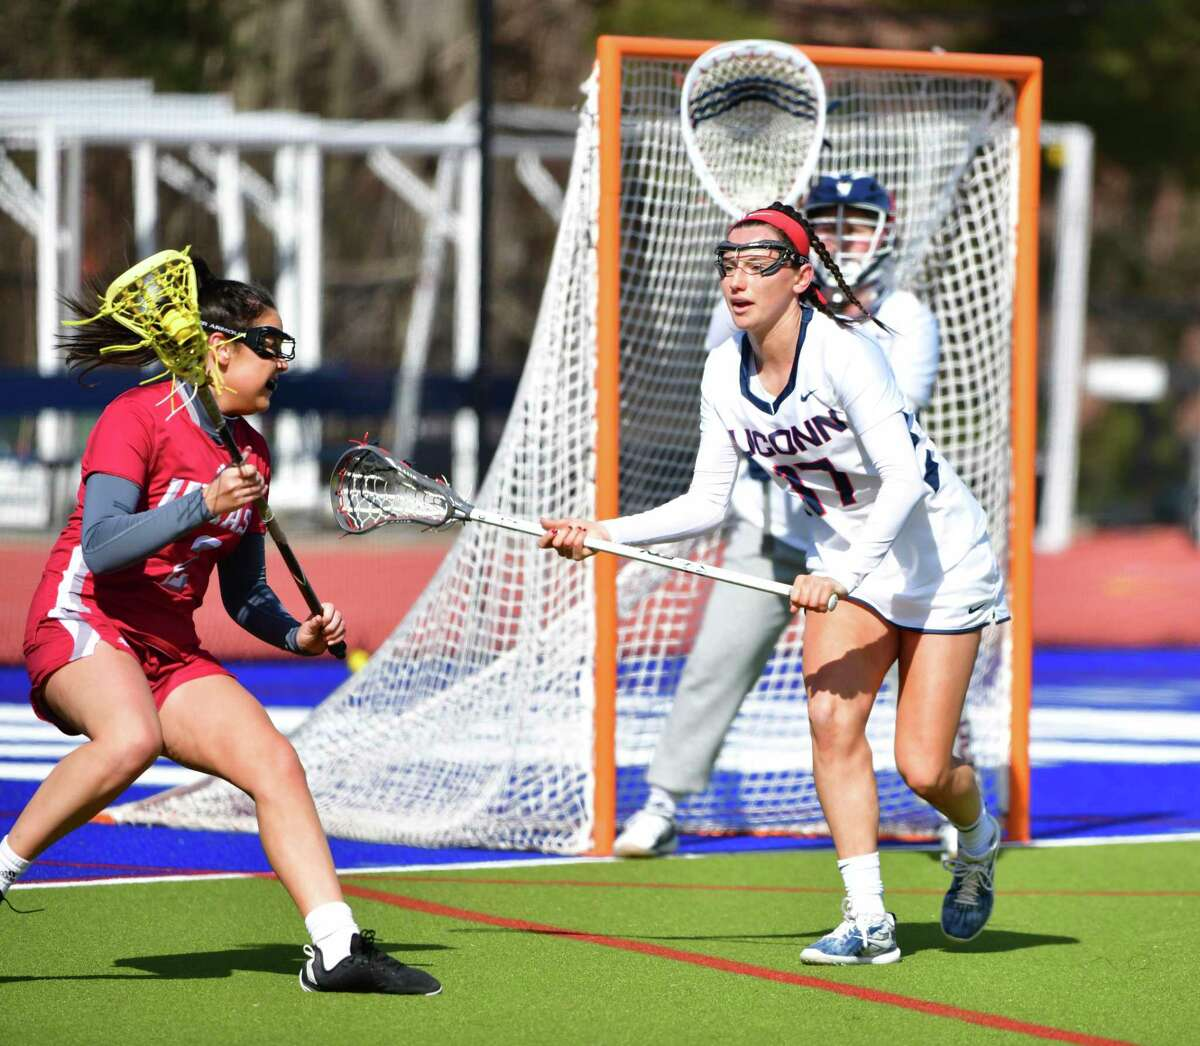 New Canaan's Julia Ozimek (17) of the University of Connecticut women's lacrosse team defends against a University of Massachusetts attacker during a game on March 7, 2020.